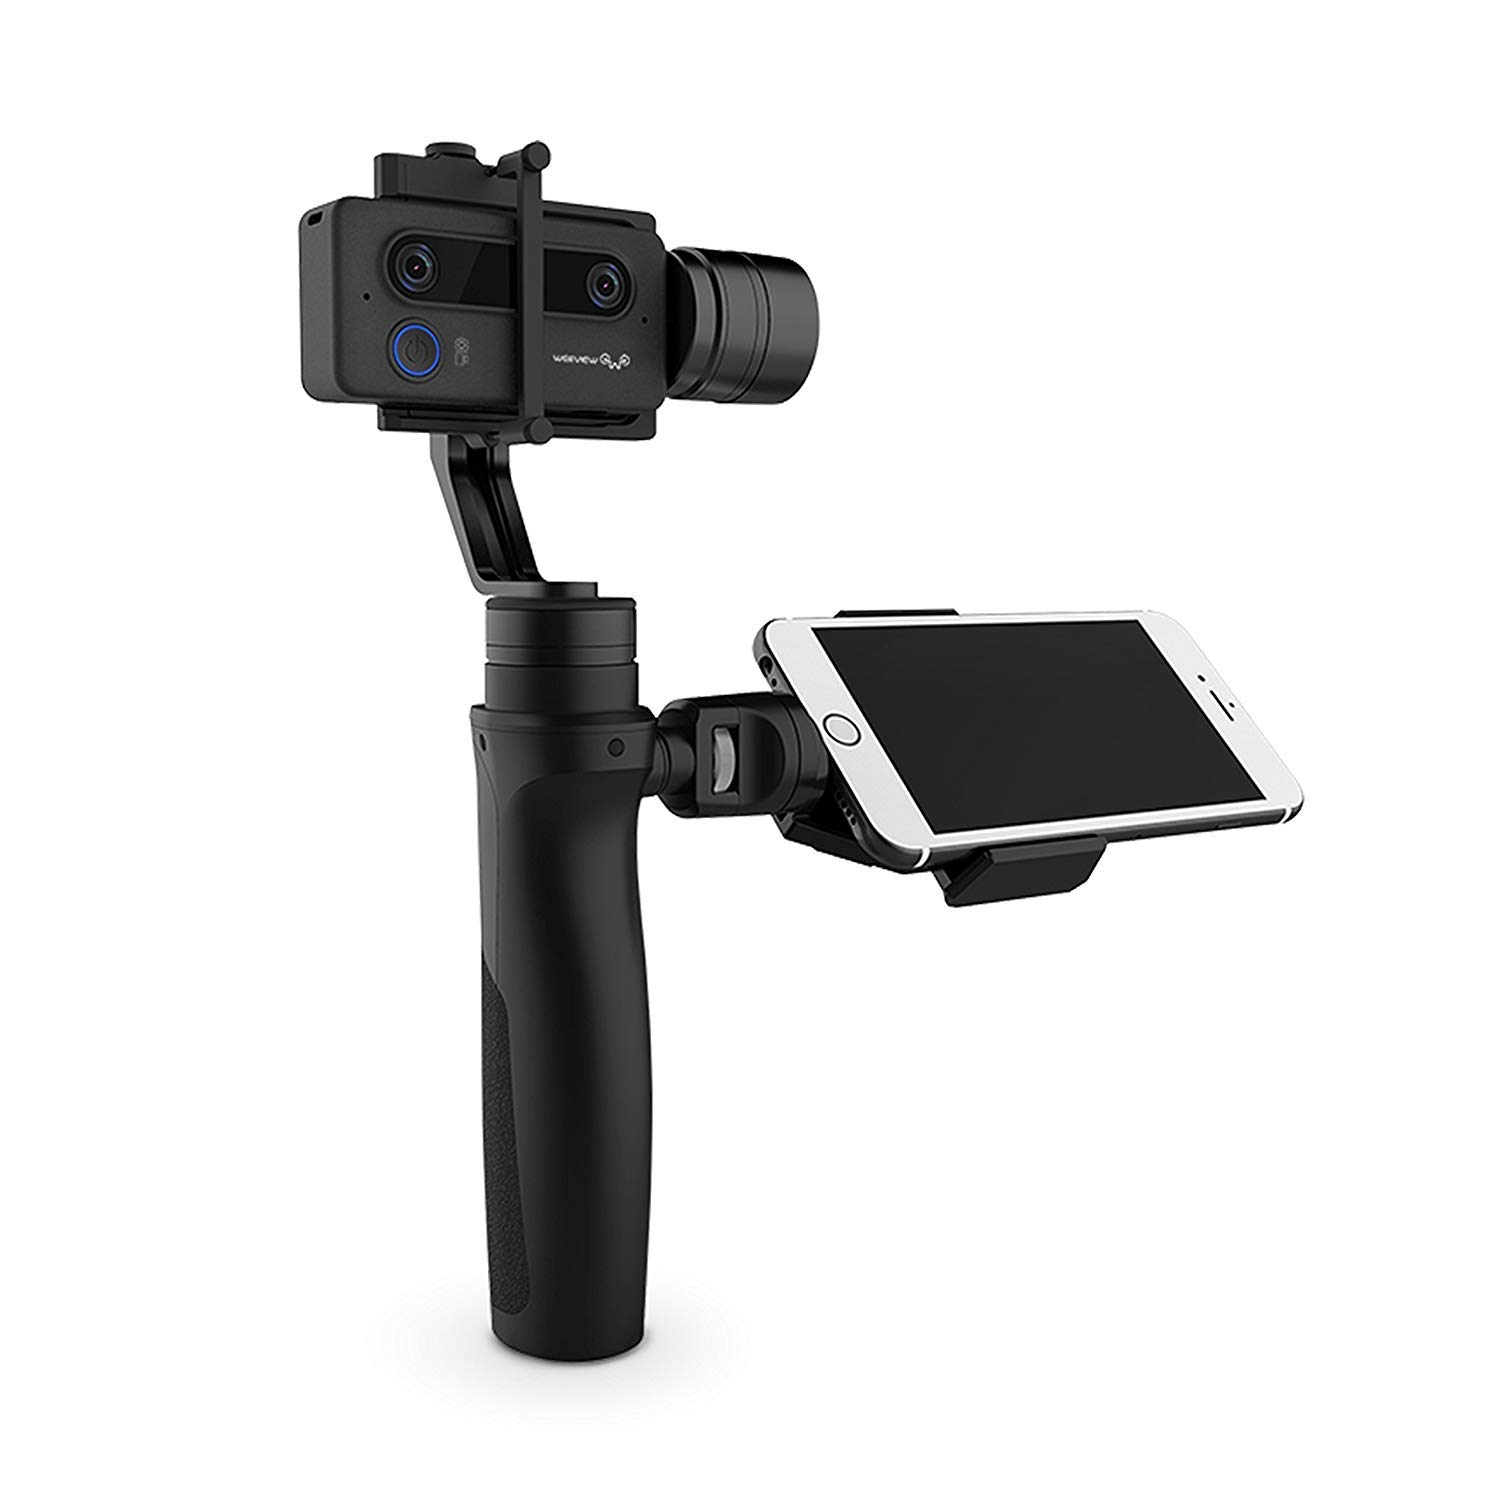 3D Camera with Gimbal Stabilizer Handheld Smartphone Streaming Camera Ultra HD 3K WiFi Mini Camera Photos and Video 3 Axis Handheld Stabilized Camera Gimbal 3D Stream YouTube Facebook(Cinematic Kit)